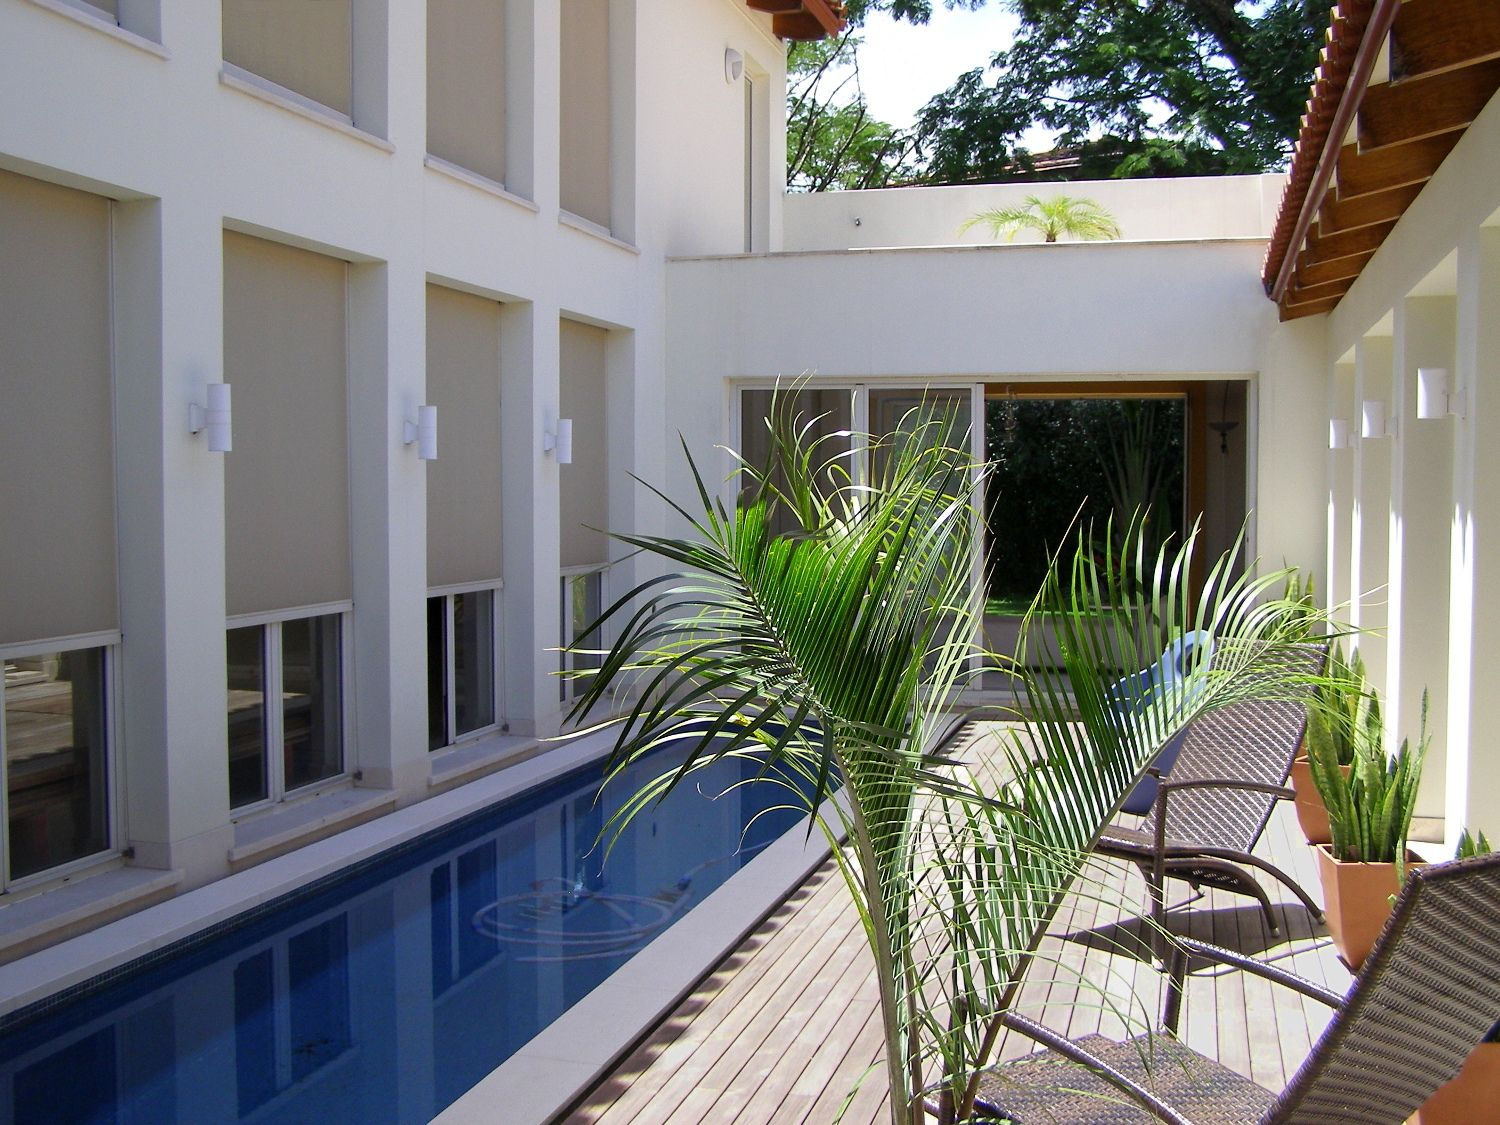 For Sale Luxury Home Santa Ana Costa Rica Bio Domus D  Sustainable Design Home Aroma Italiano Eco Design Costarica Closeup